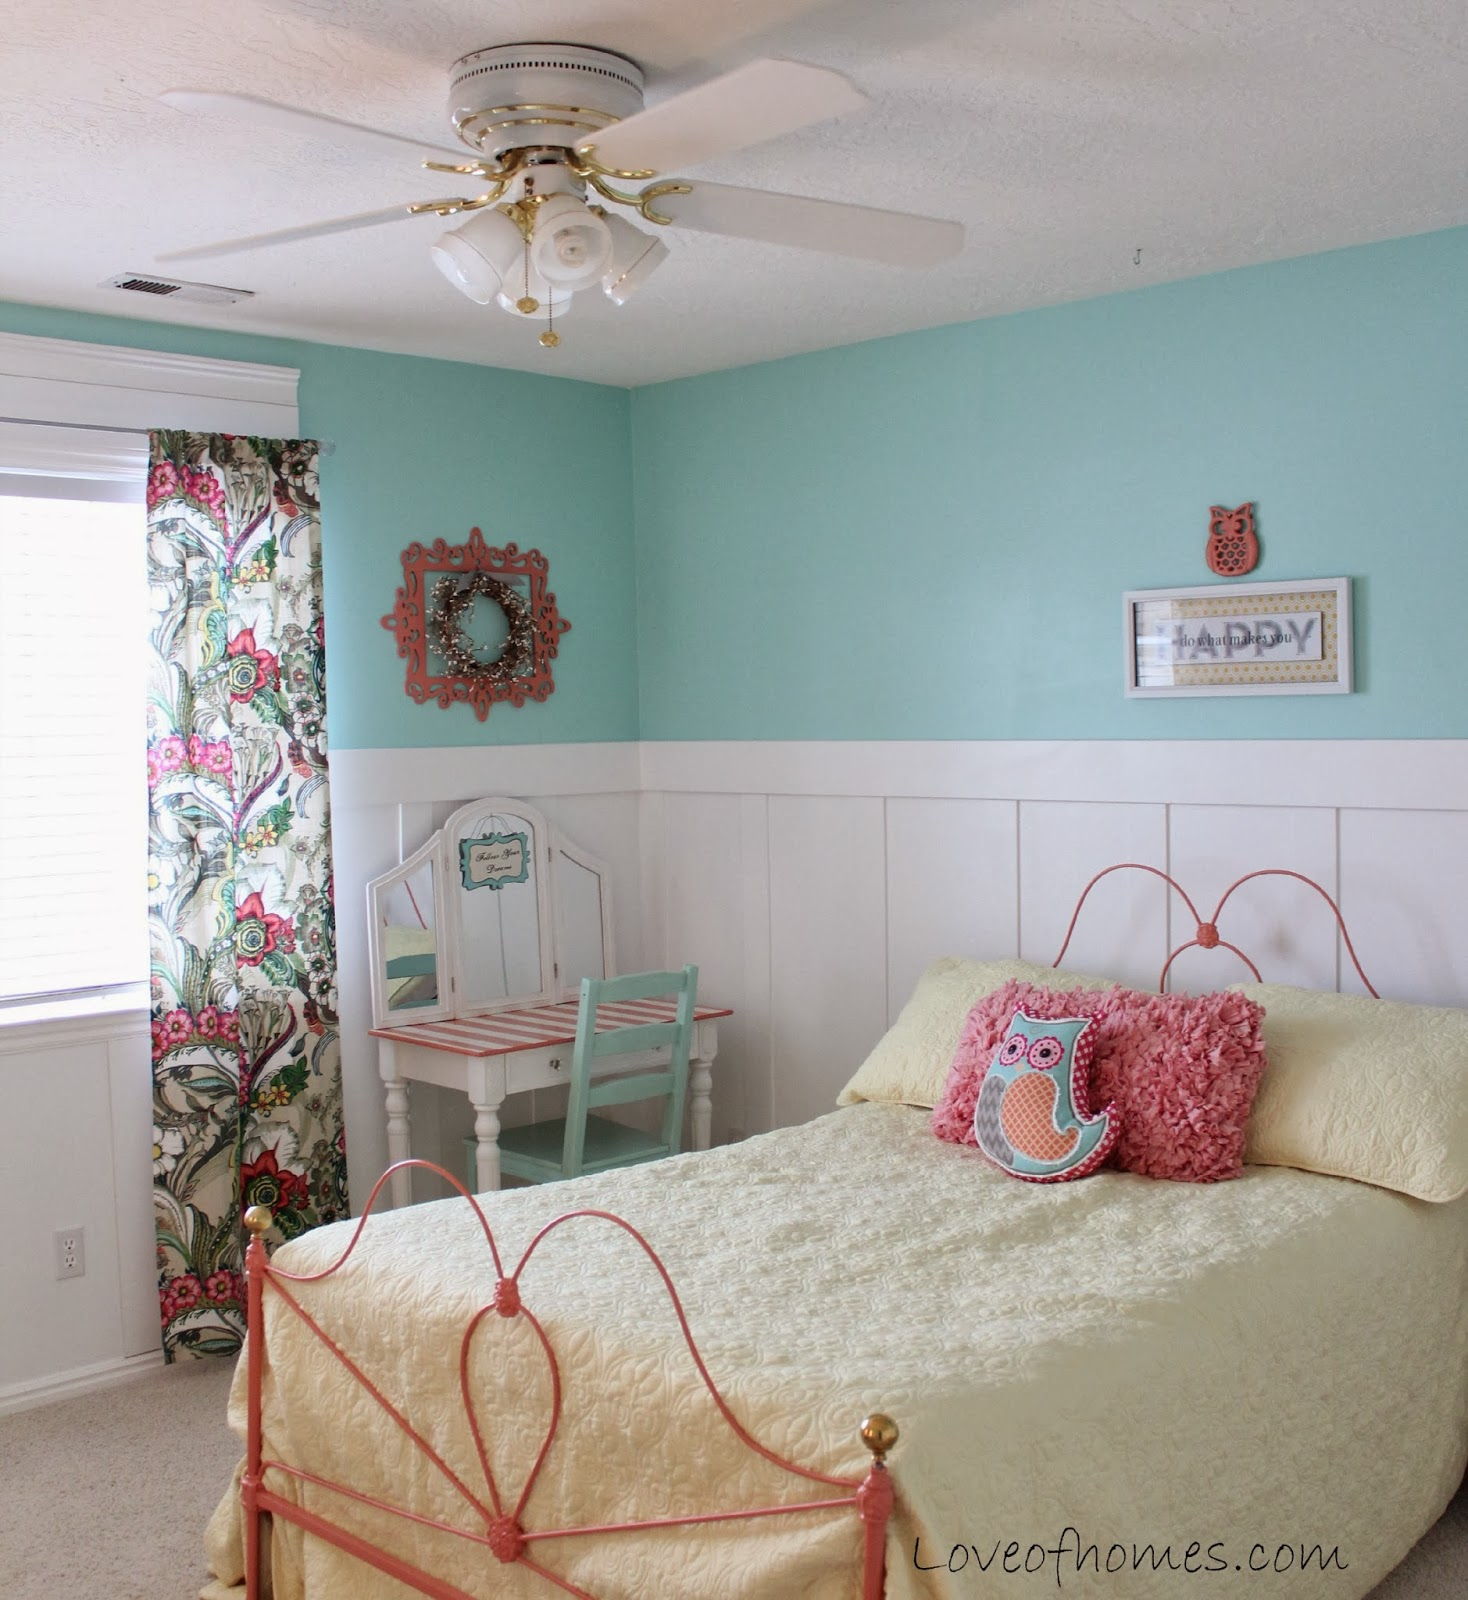 LOVE OF HOMES: Coral, Yellow & Blue Girl's Bedroom